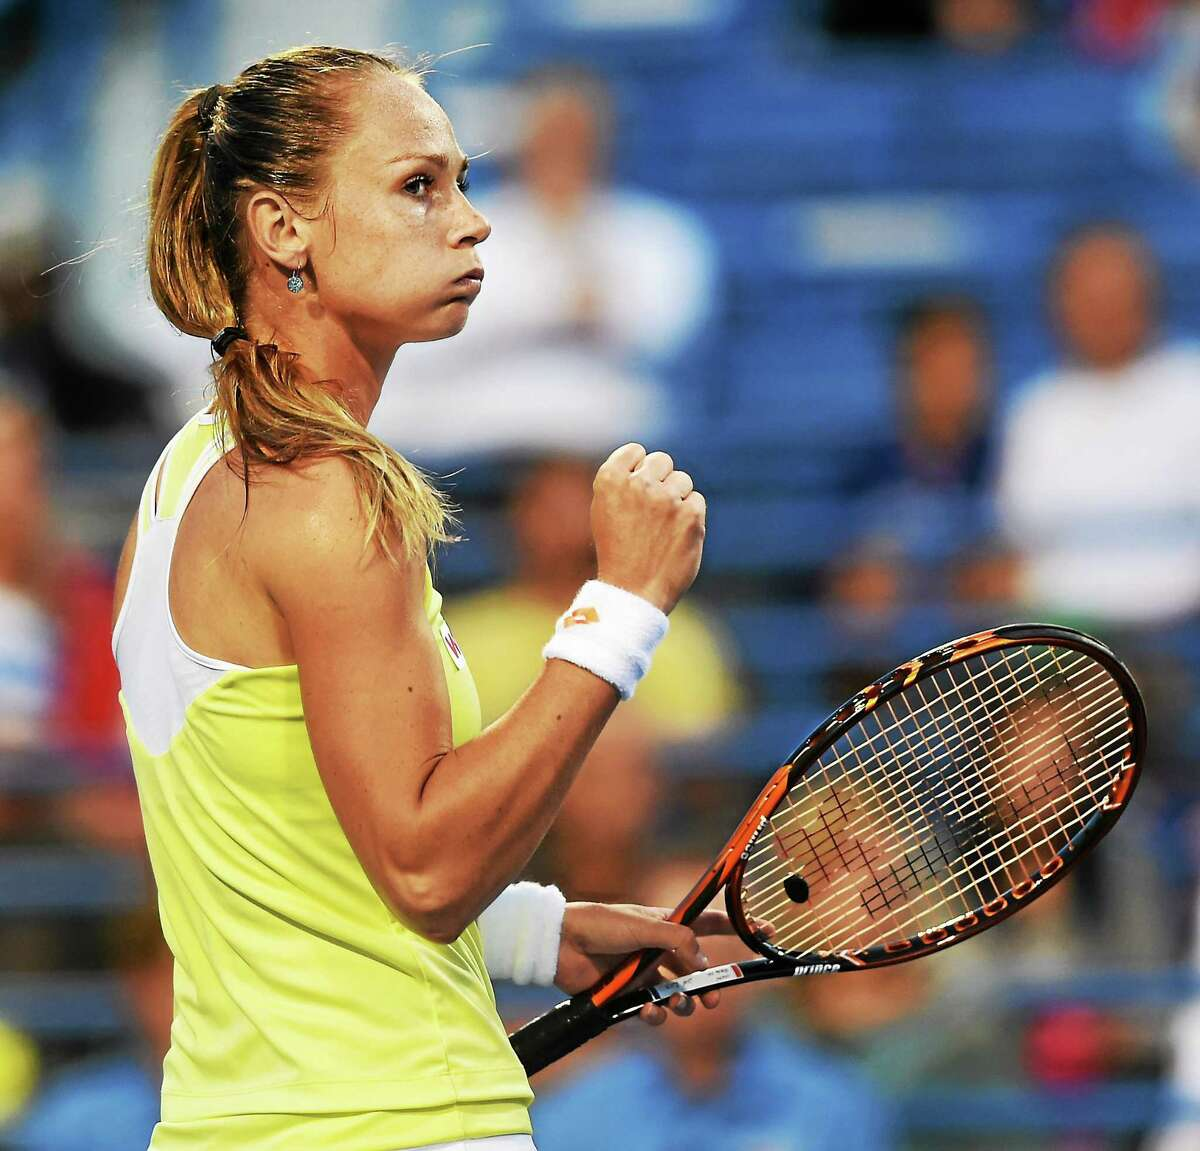 Magdalena Rybarikova defeated the Connecticut Open's top seed and defending champion Simona Halep on Tuesday night at the Connecticut Tennis Center.